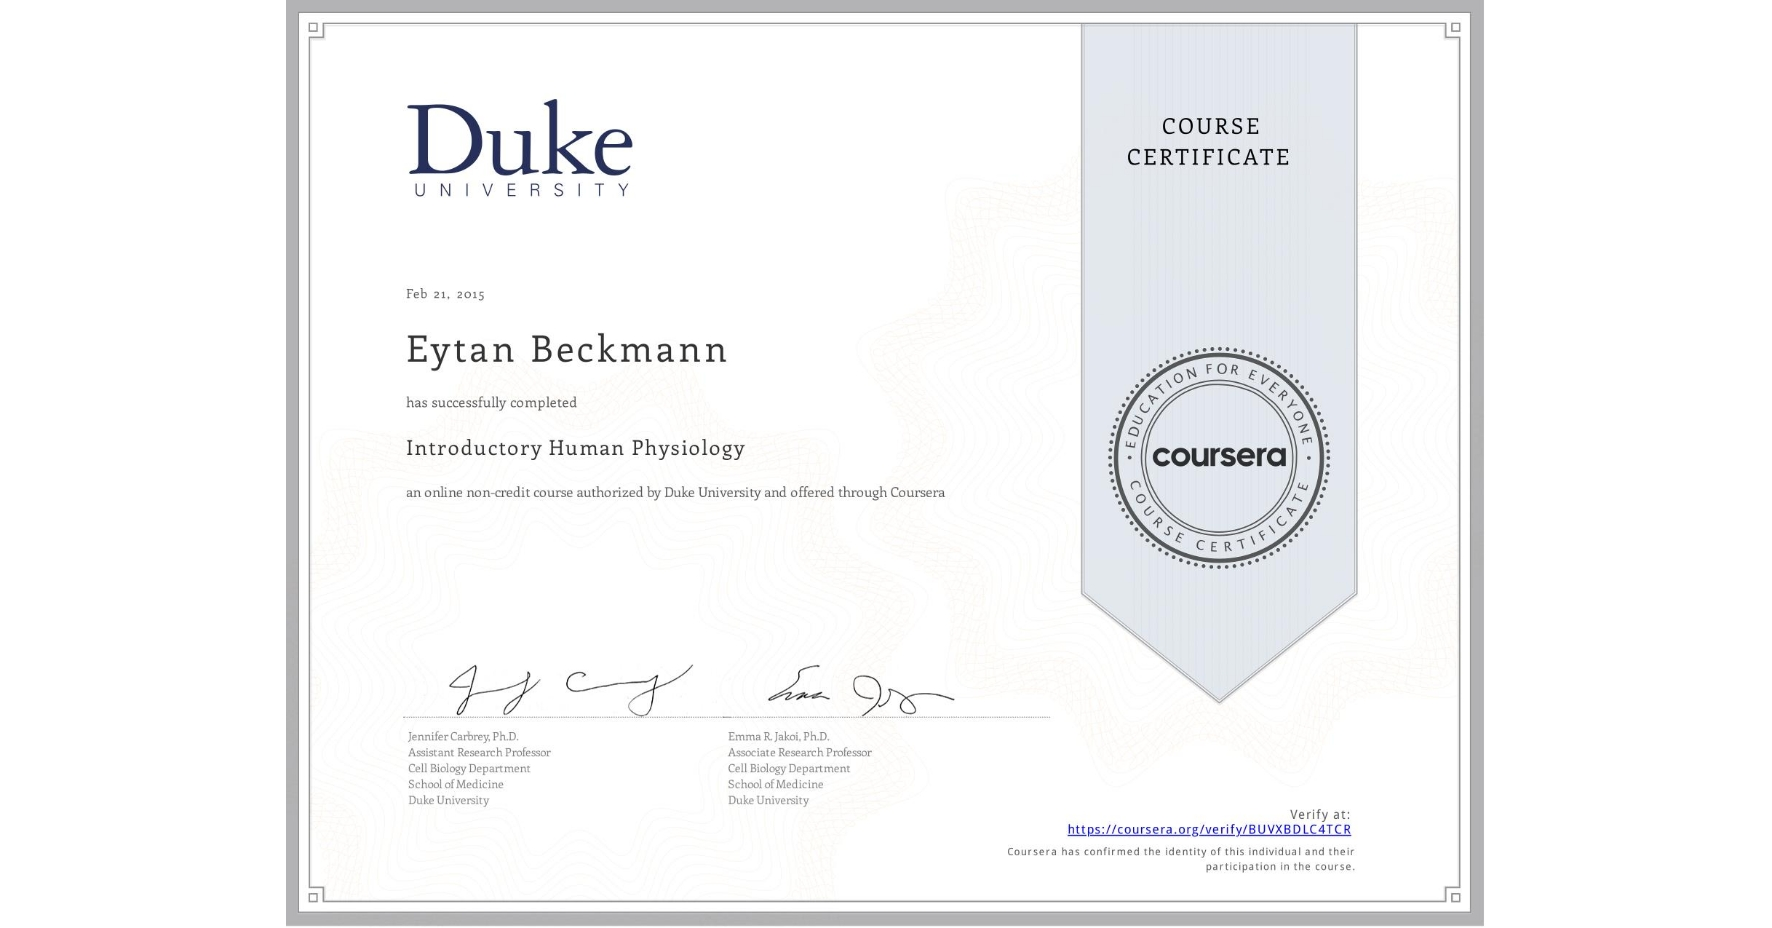 View certificate for Eytan Beckmann, Introductory Human Physiology, an online non-credit course authorized by Duke University and offered through Coursera